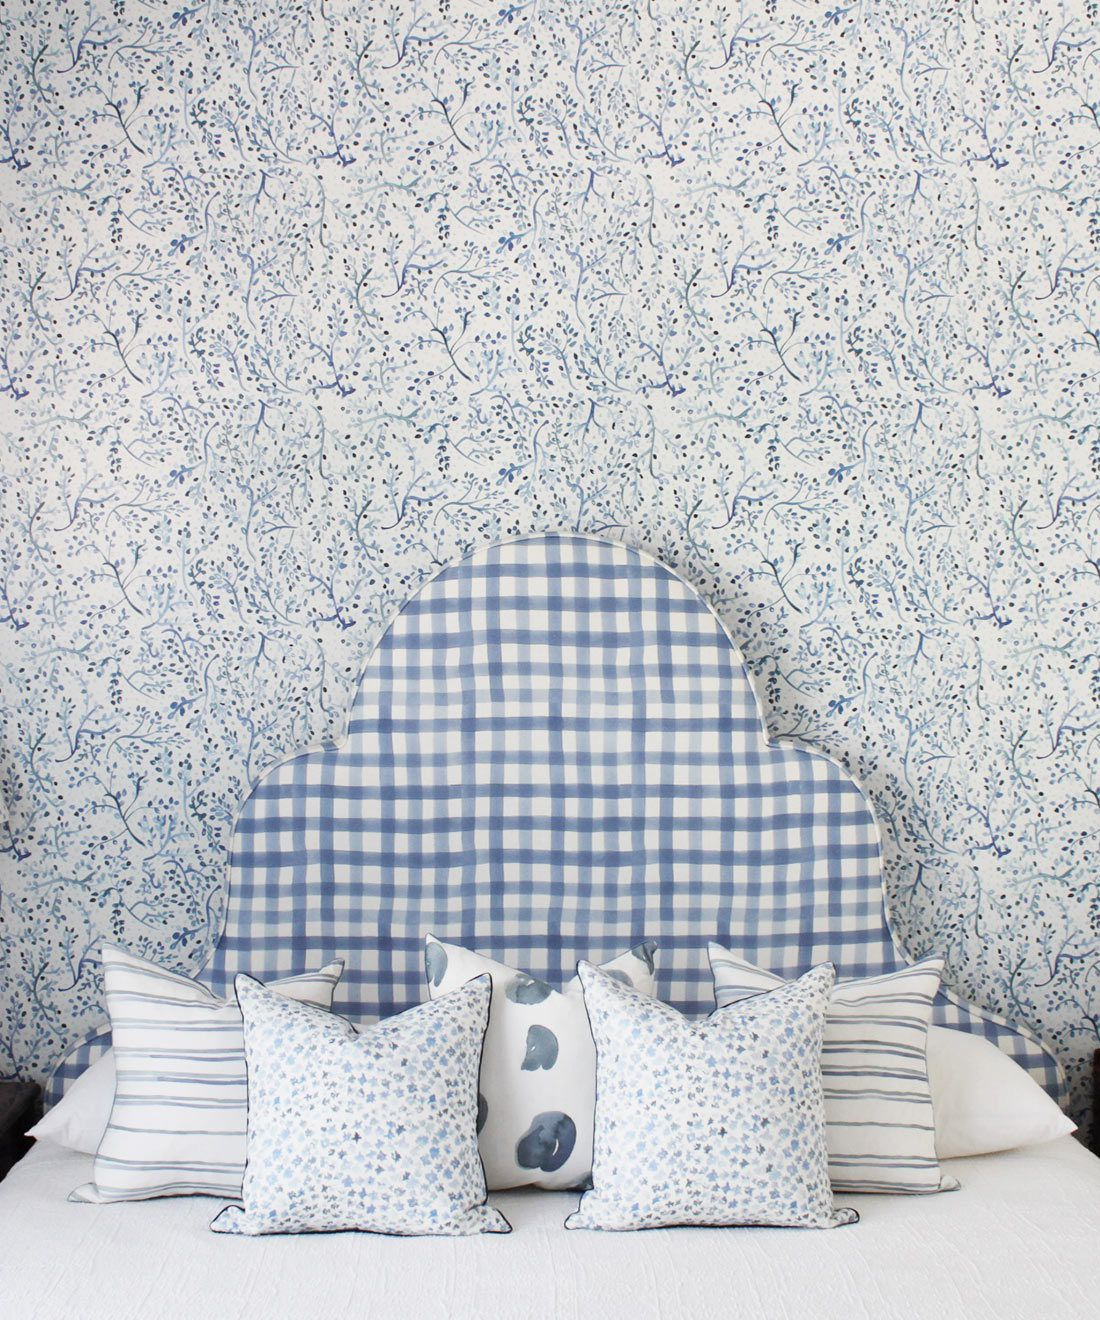 Indigo Garden • Blue Botanical Wallpaper • Floral • Bedroom with plaid blue headboard and white pillows. Milton & King USA